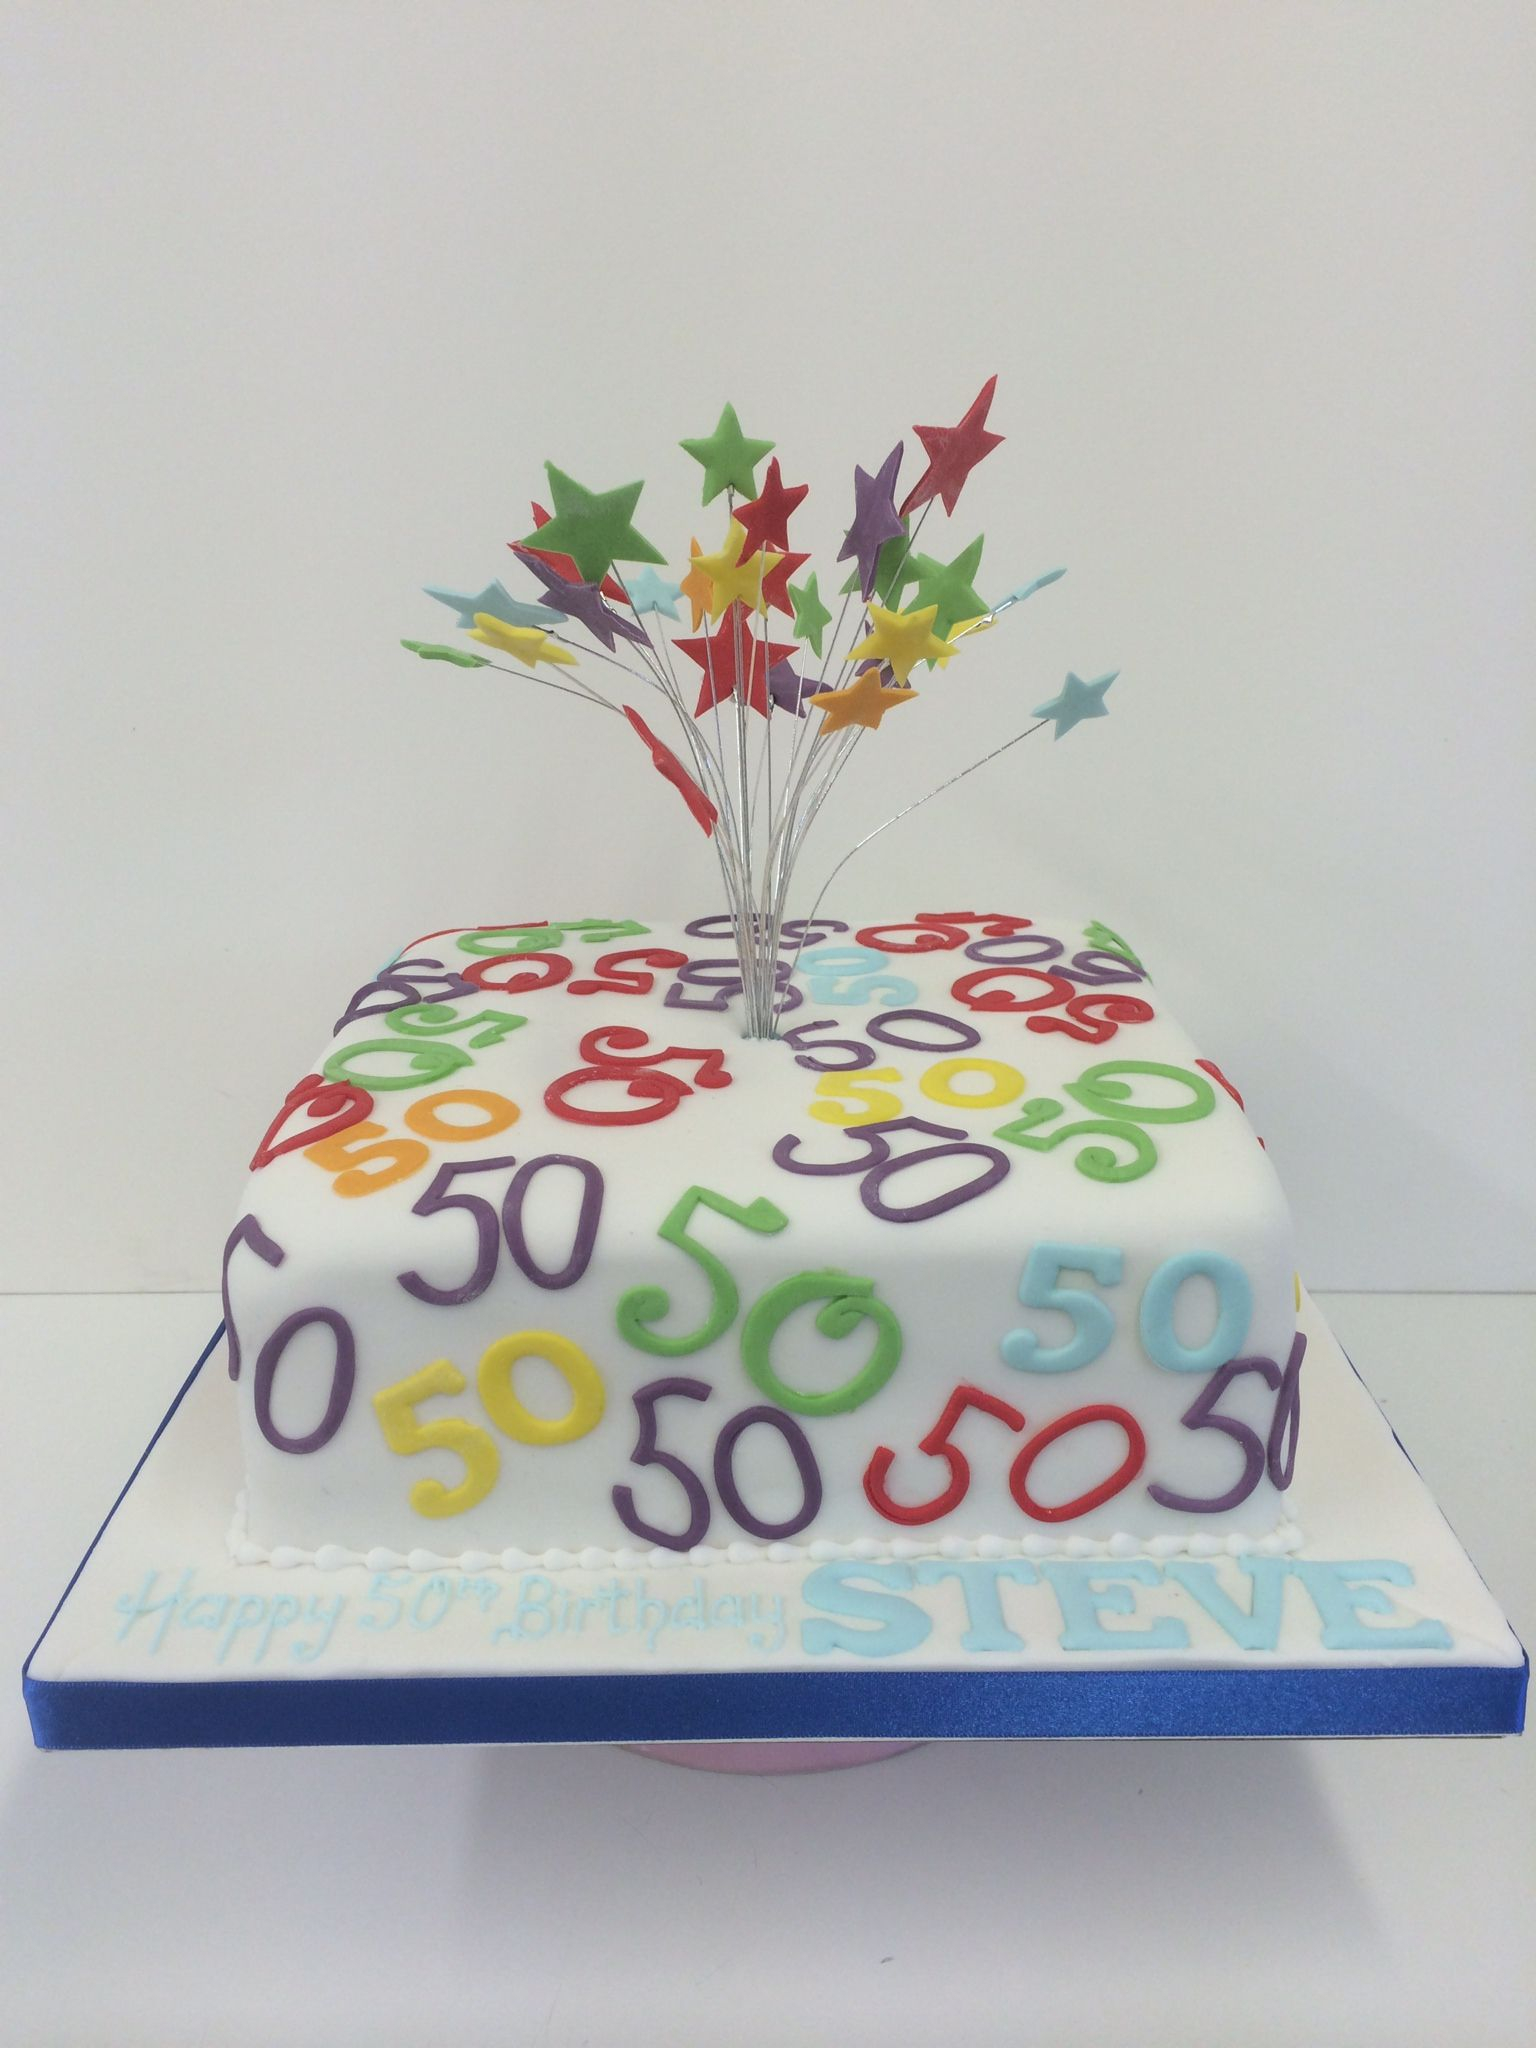 1536 X 2048 In 25 Awesome Photo Of 50Th Birthday Cake Ideas For Her